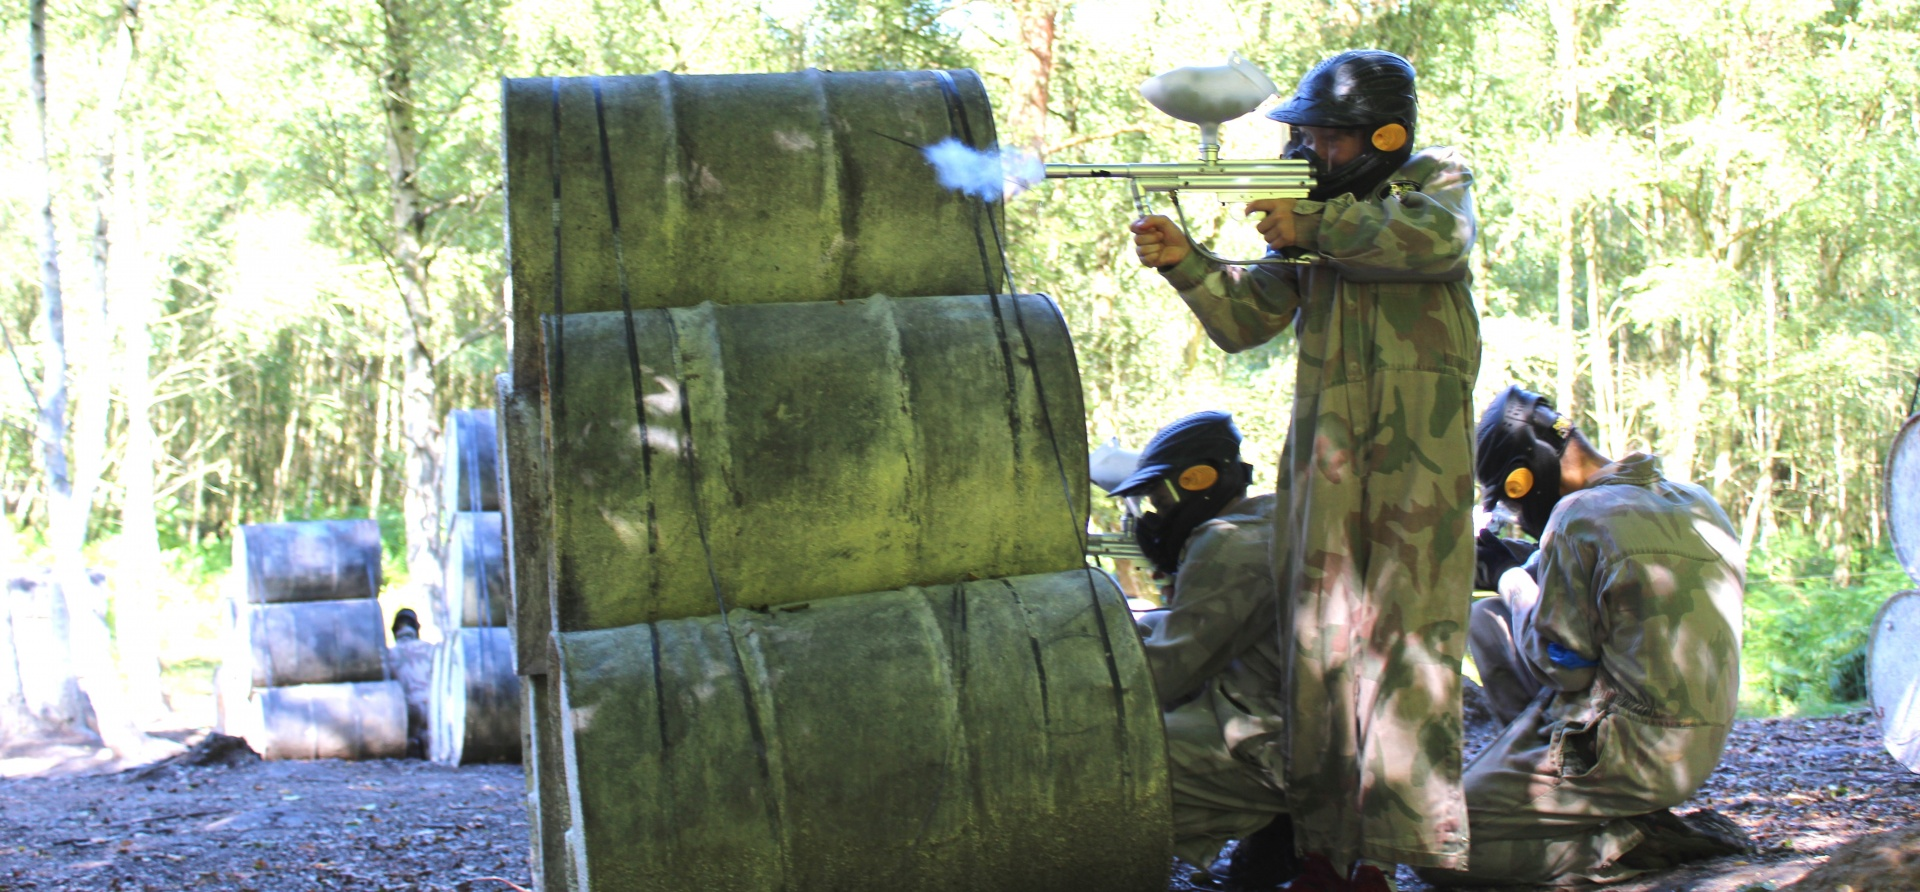 Full Day Paintballing Experience plus 100 Paintballs pp-5